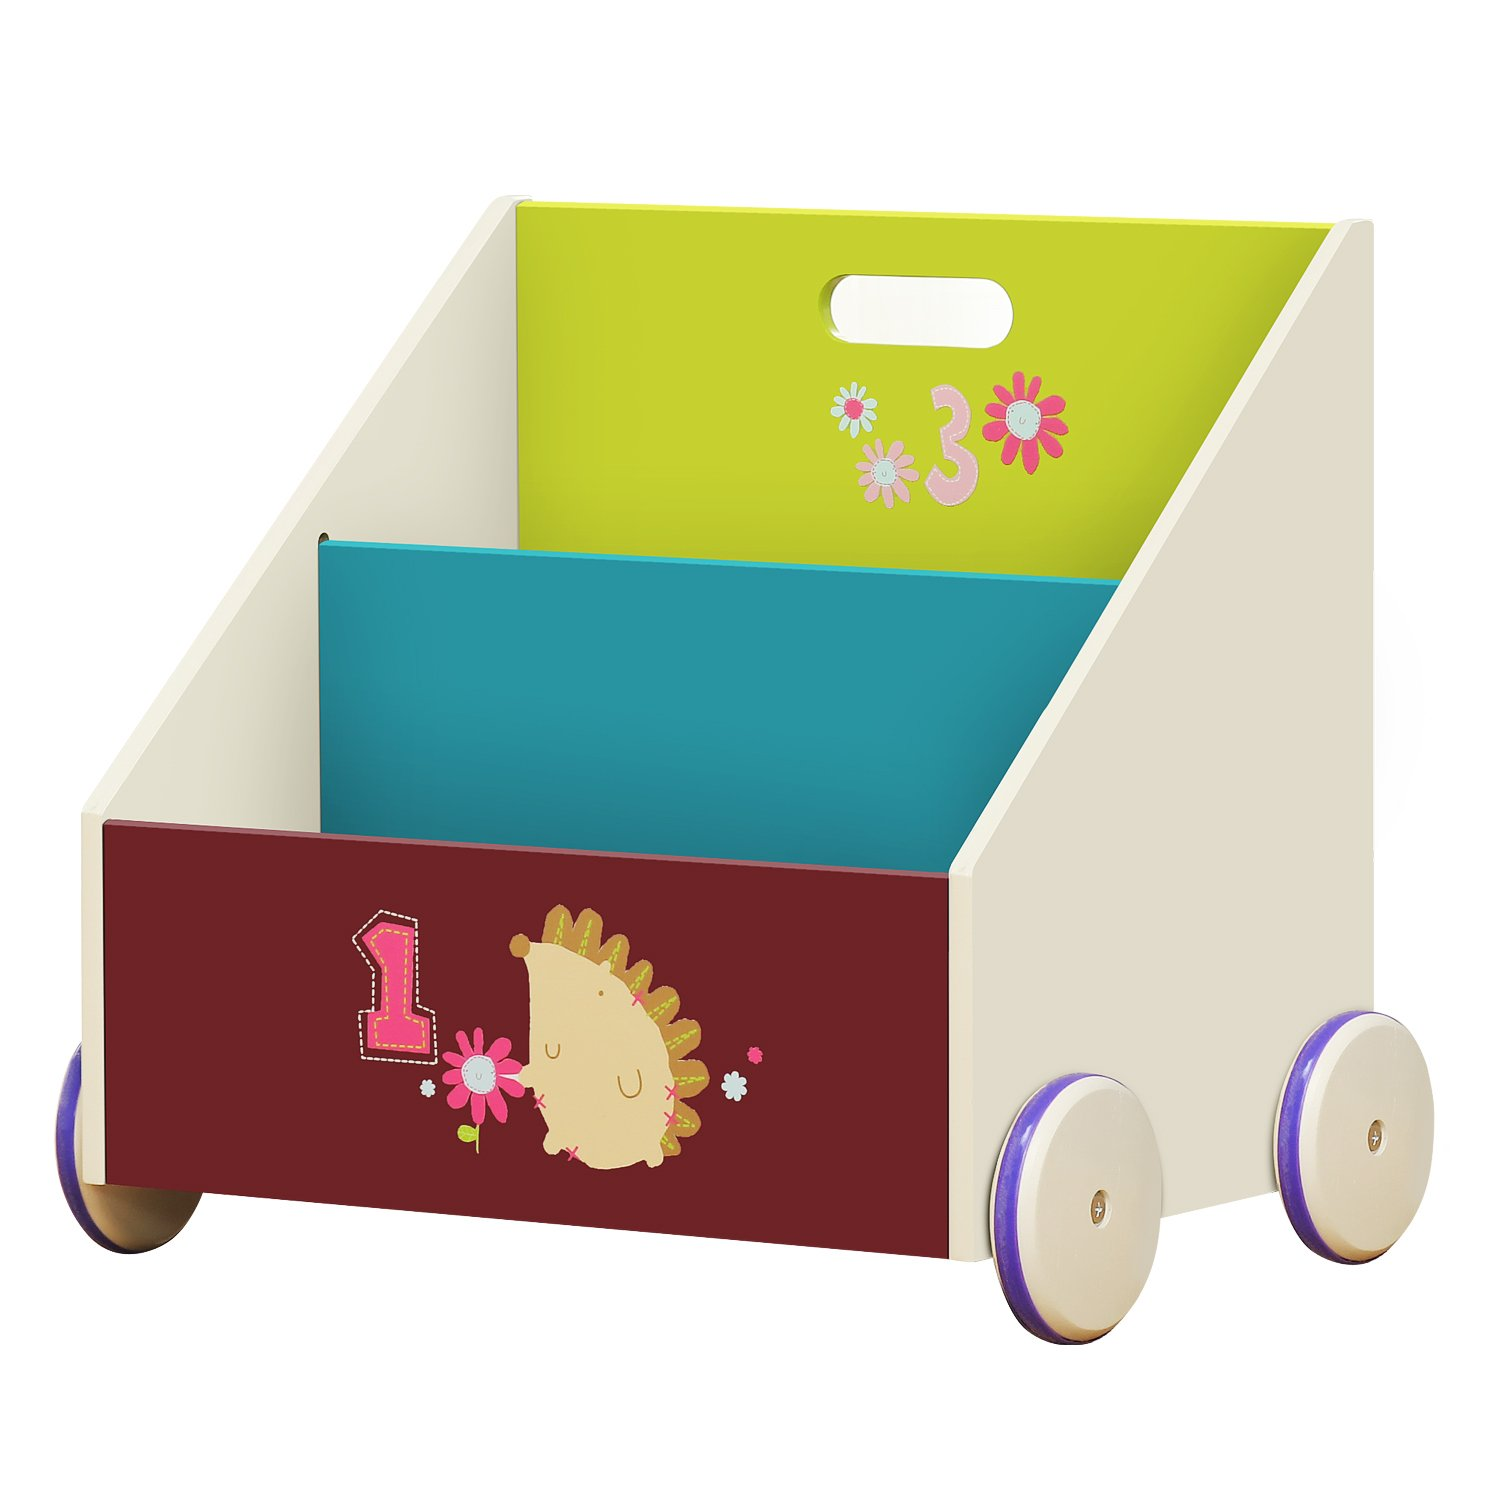 2-in-1 Viola Hedgehog Bookcase for Kid 1-5 Years 2 Tier Bookcase//kid Bookcase Storage//Wood Bookshelf//Strong Bookcase//Open bookshelf labebe Child Bookcase Small Wooden Bookshelf with Wheels